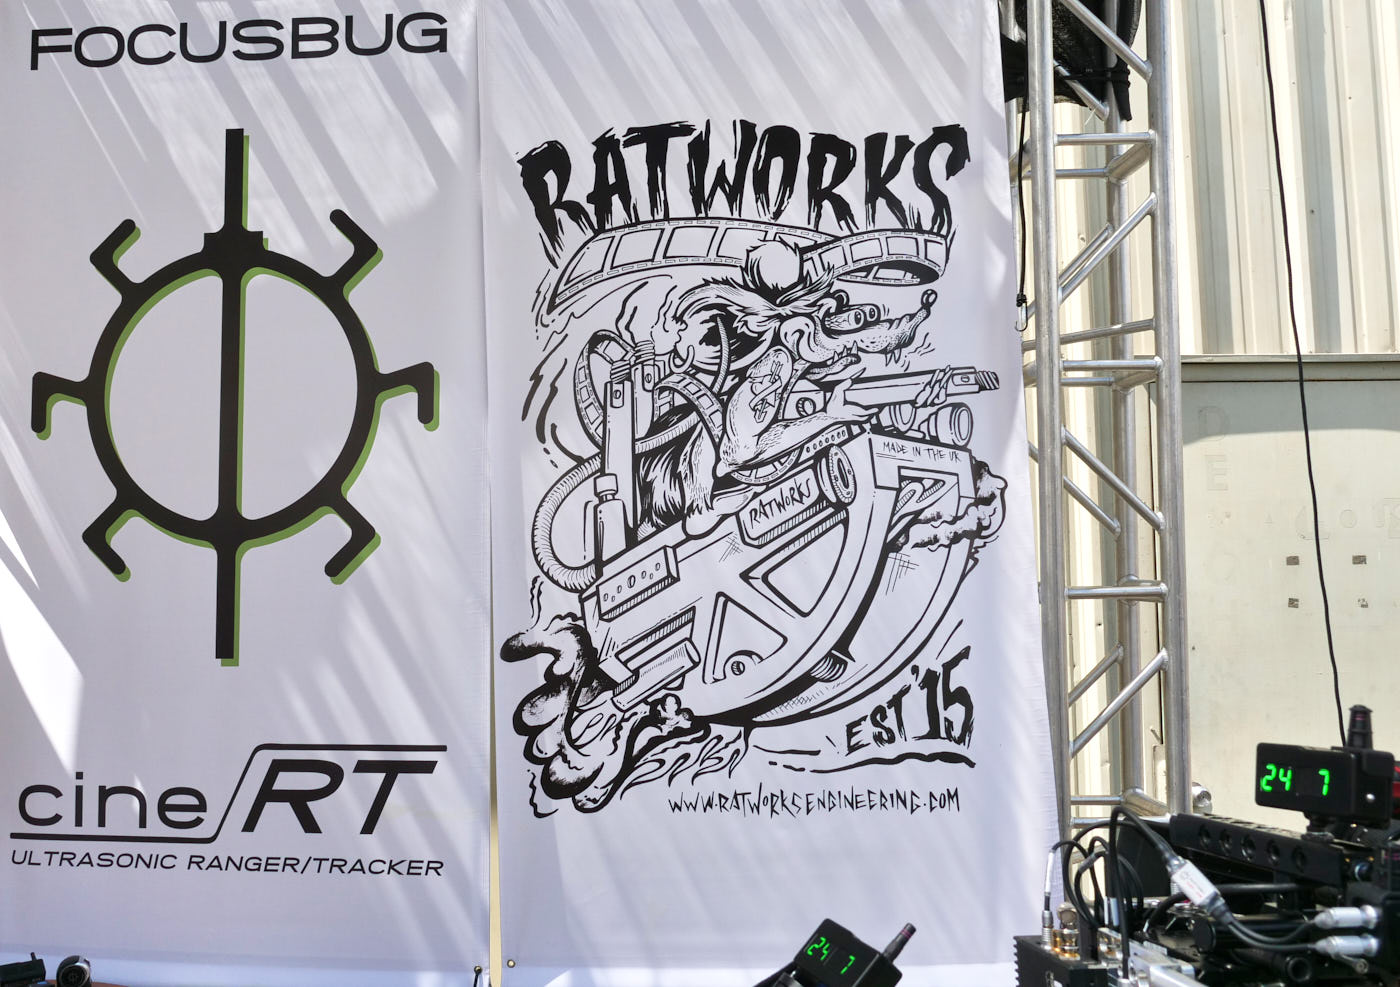 cineRT and RatWorksEngineering banners